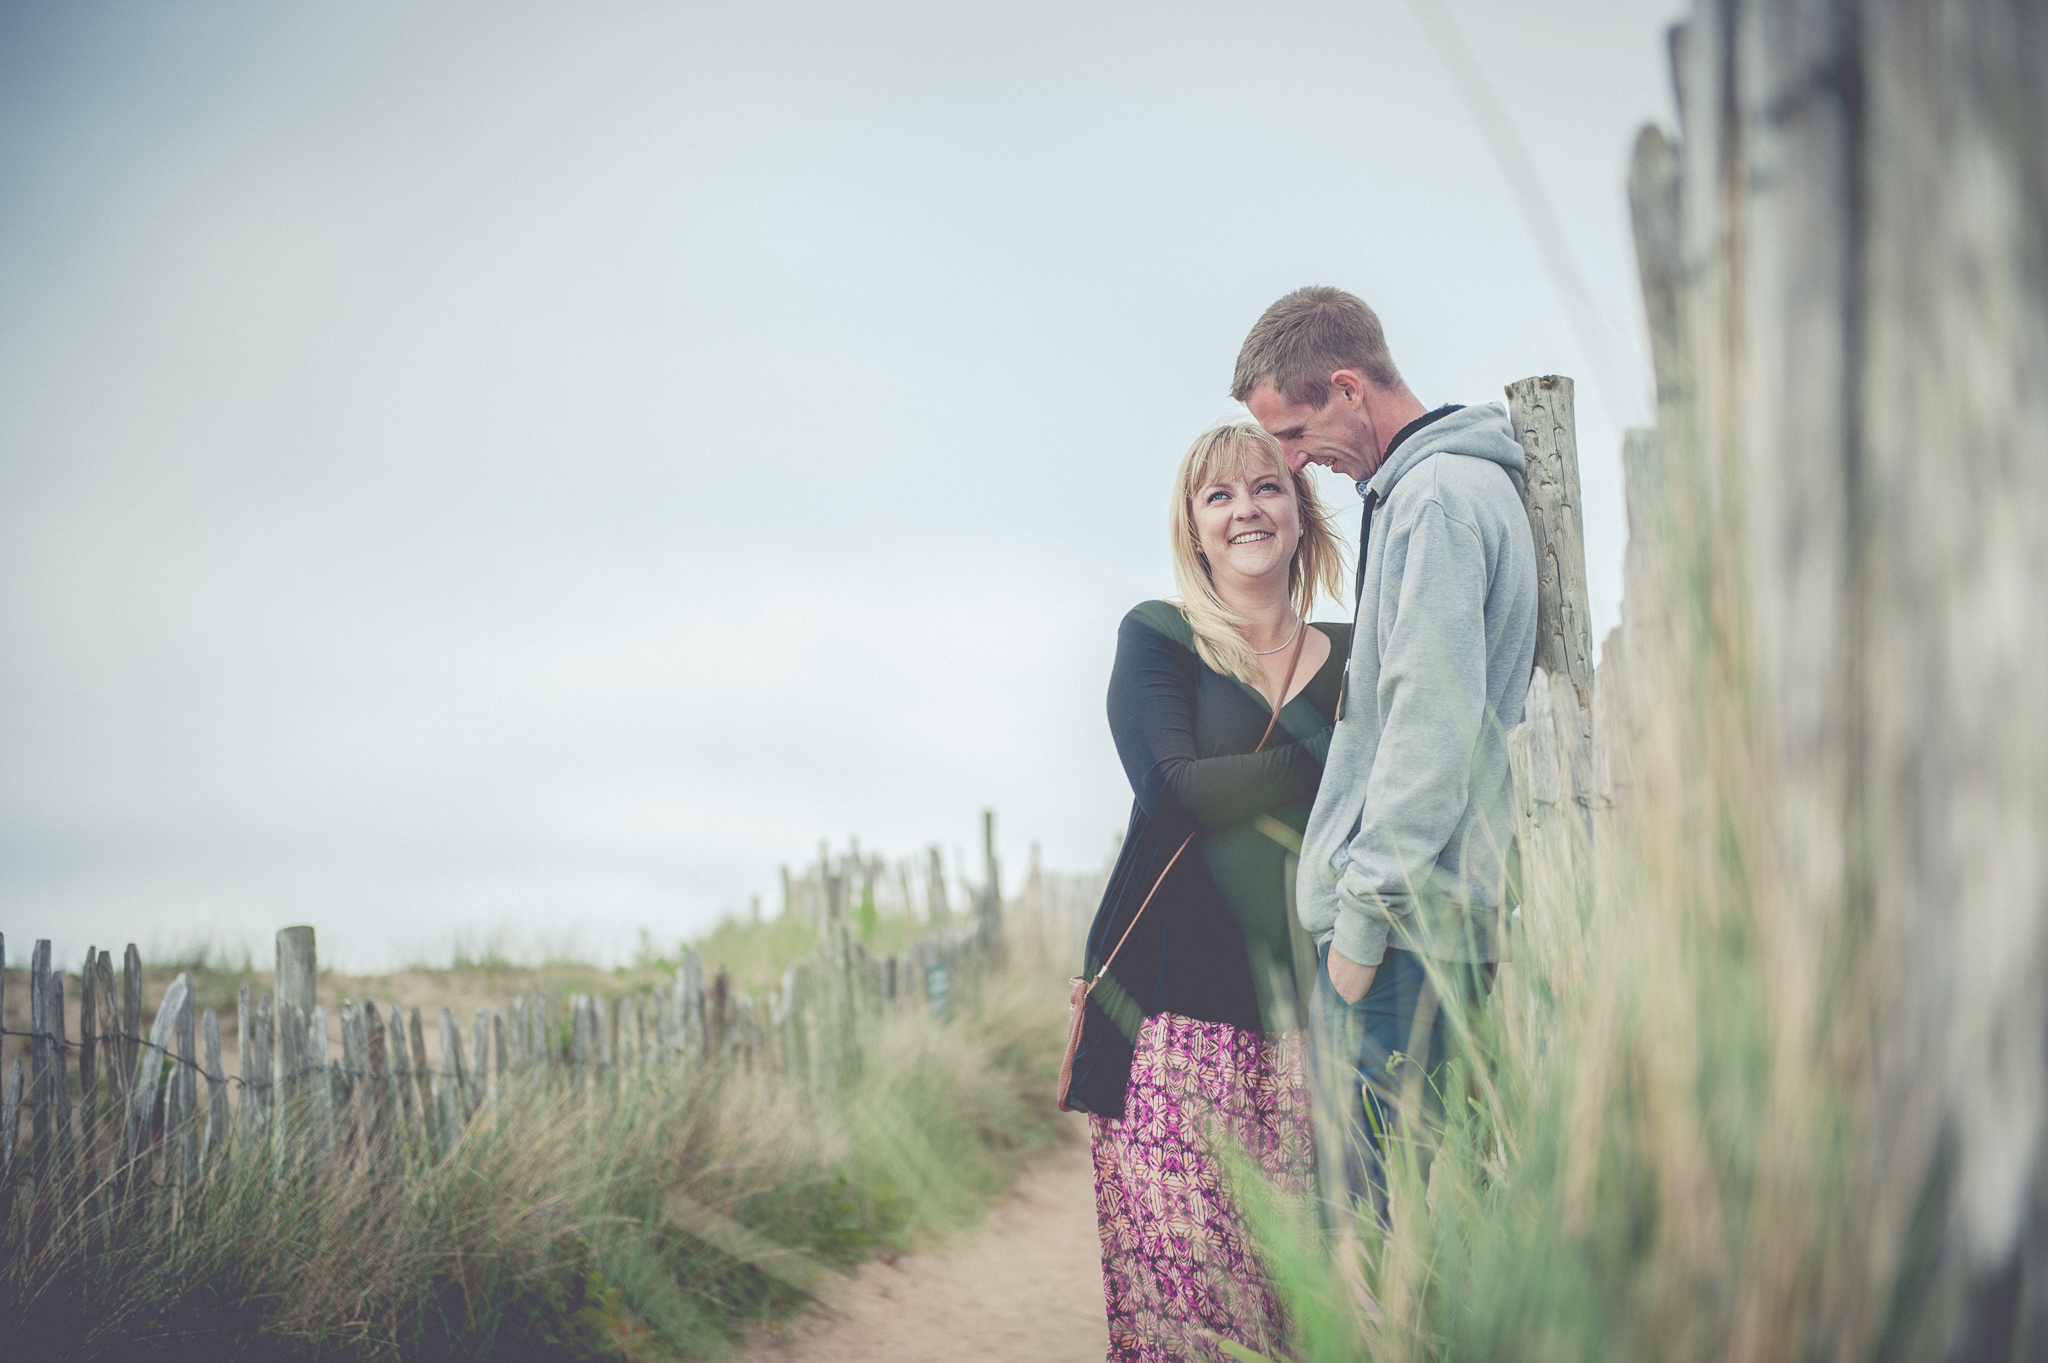 Engagement session photo of love taken at Bantham Beach, Devon.